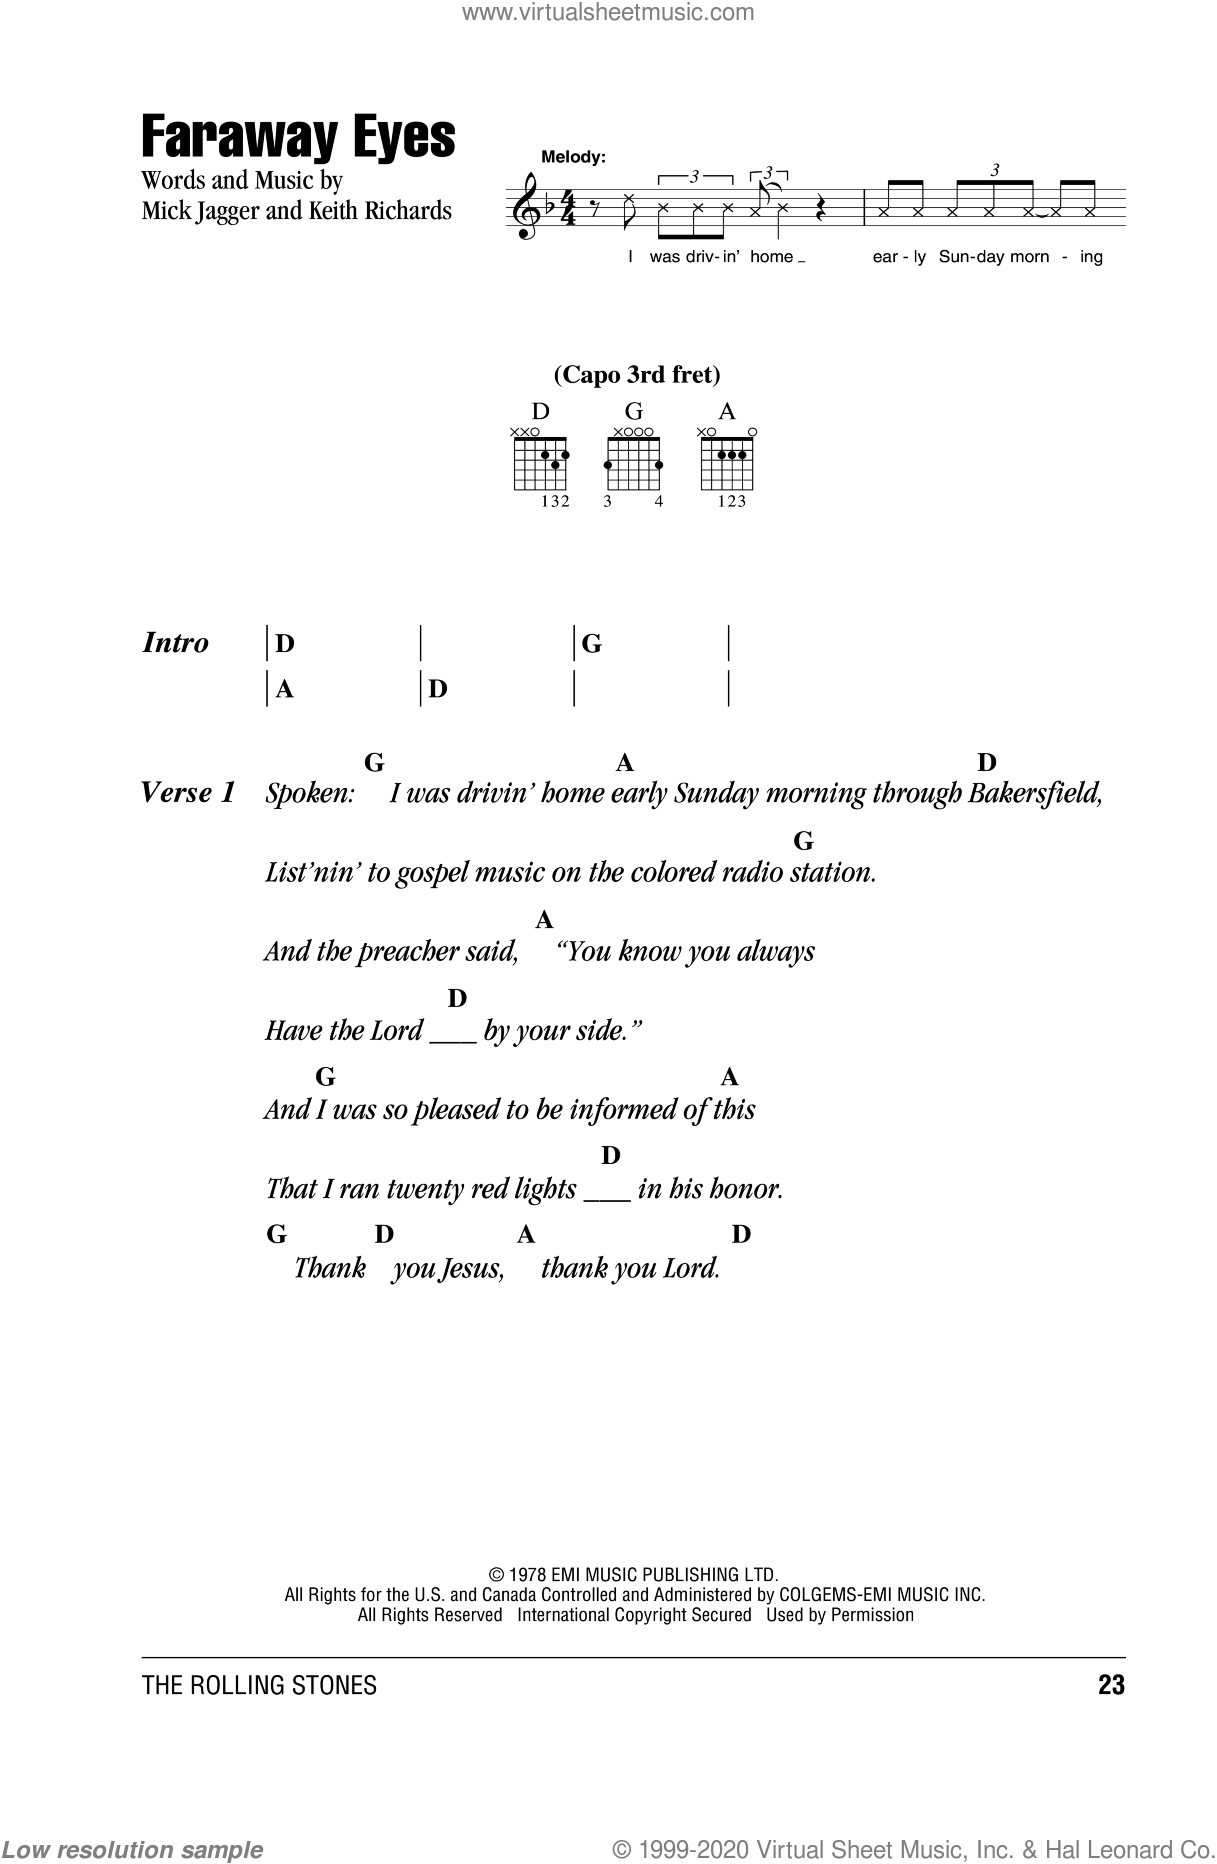 Faraway Eyes sheet music for guitar (chords) by The Rolling Stones, Keith Richards and Mick Jagger, intermediate skill level